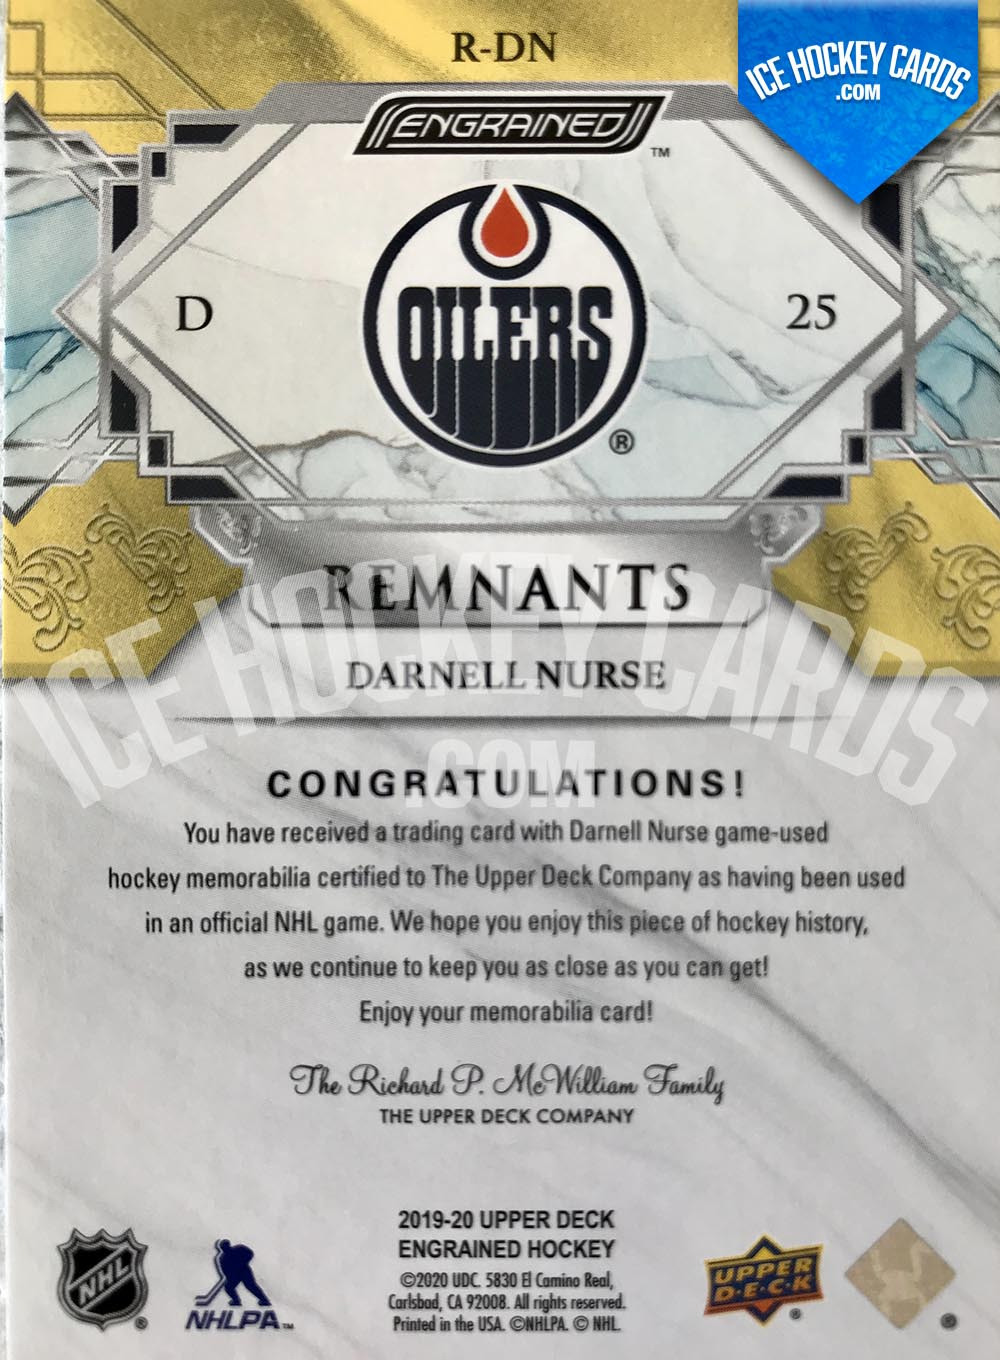 Upper Deck - Engrained 2019-20 - Darnell Nurse Remnants Sticks Gold Card # to 65 back